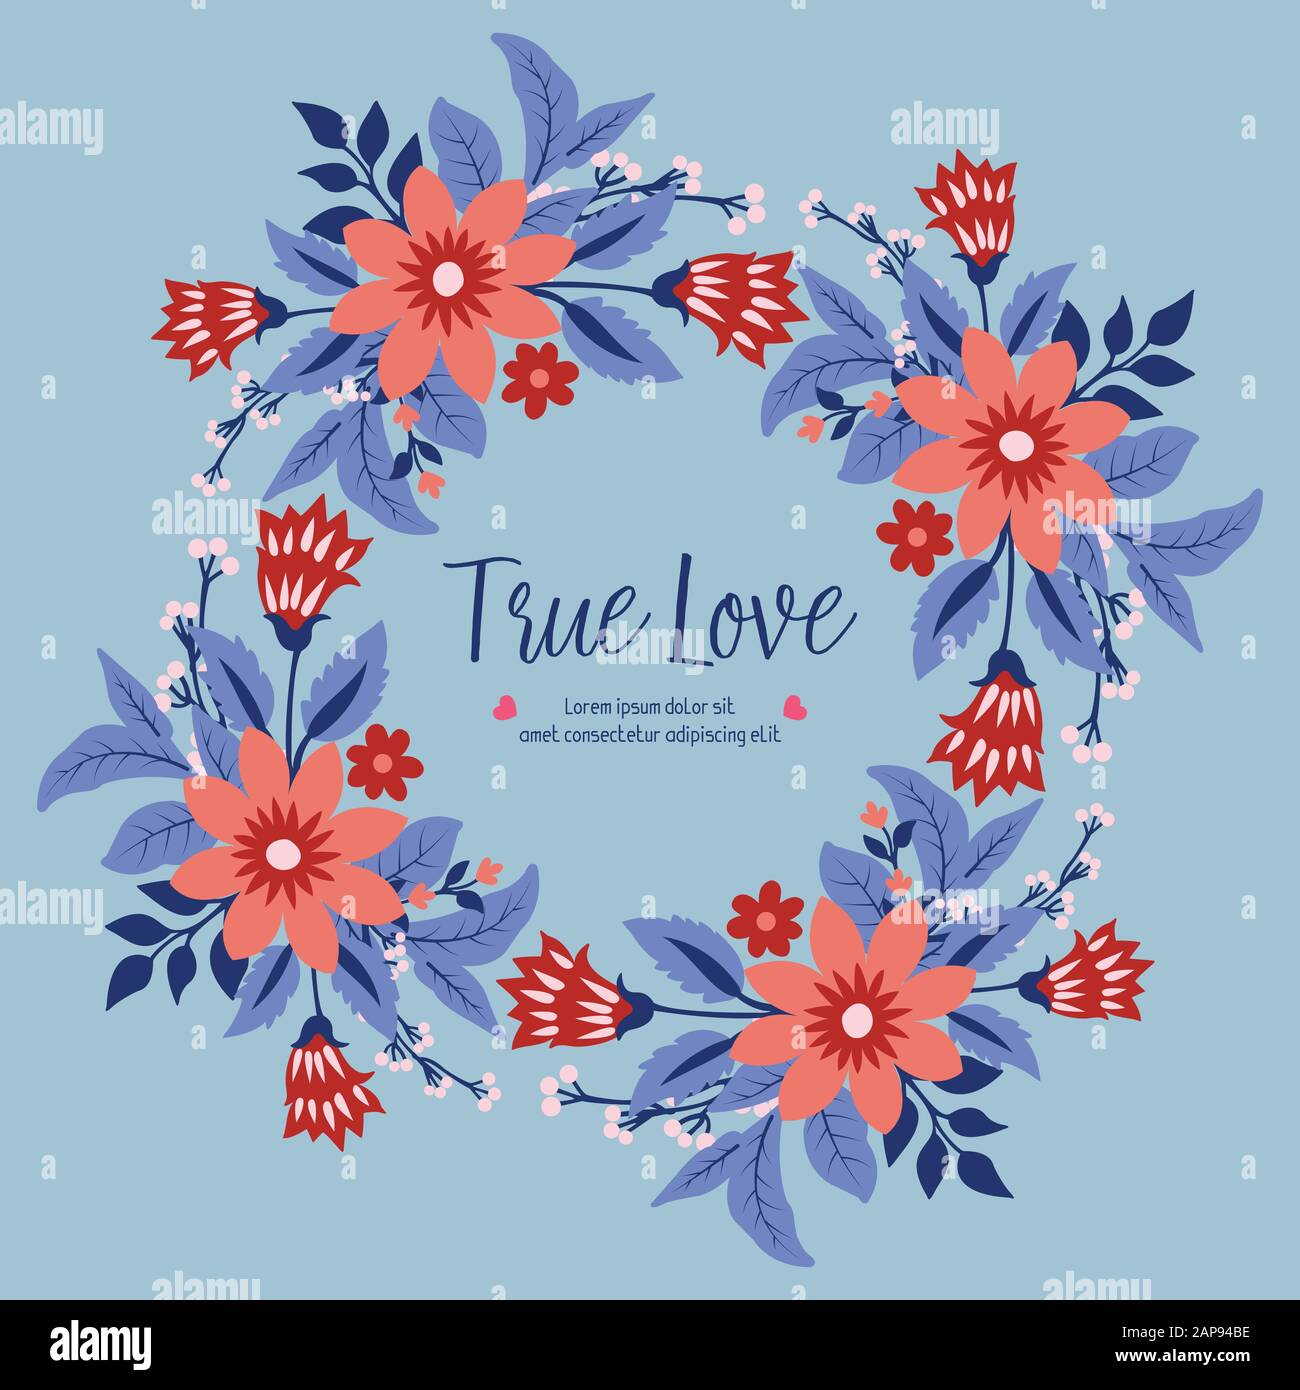 Modern Shape Of Leaf And Red Floral Frame For True Love Greeting